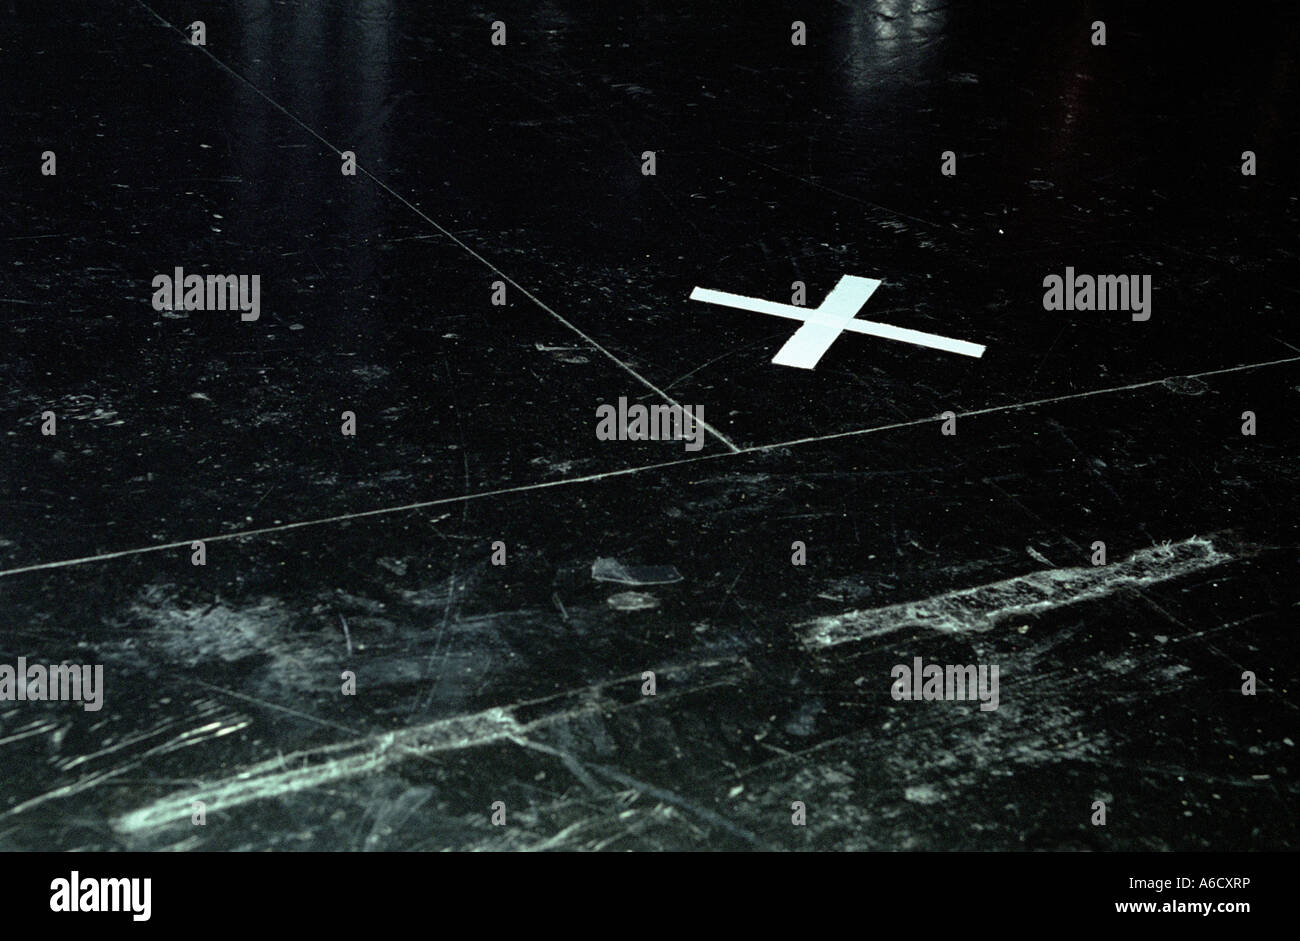 A Cross On Stage To Mark Where A Performer Should Stand Like X Marks Stock Photo Royalty Free